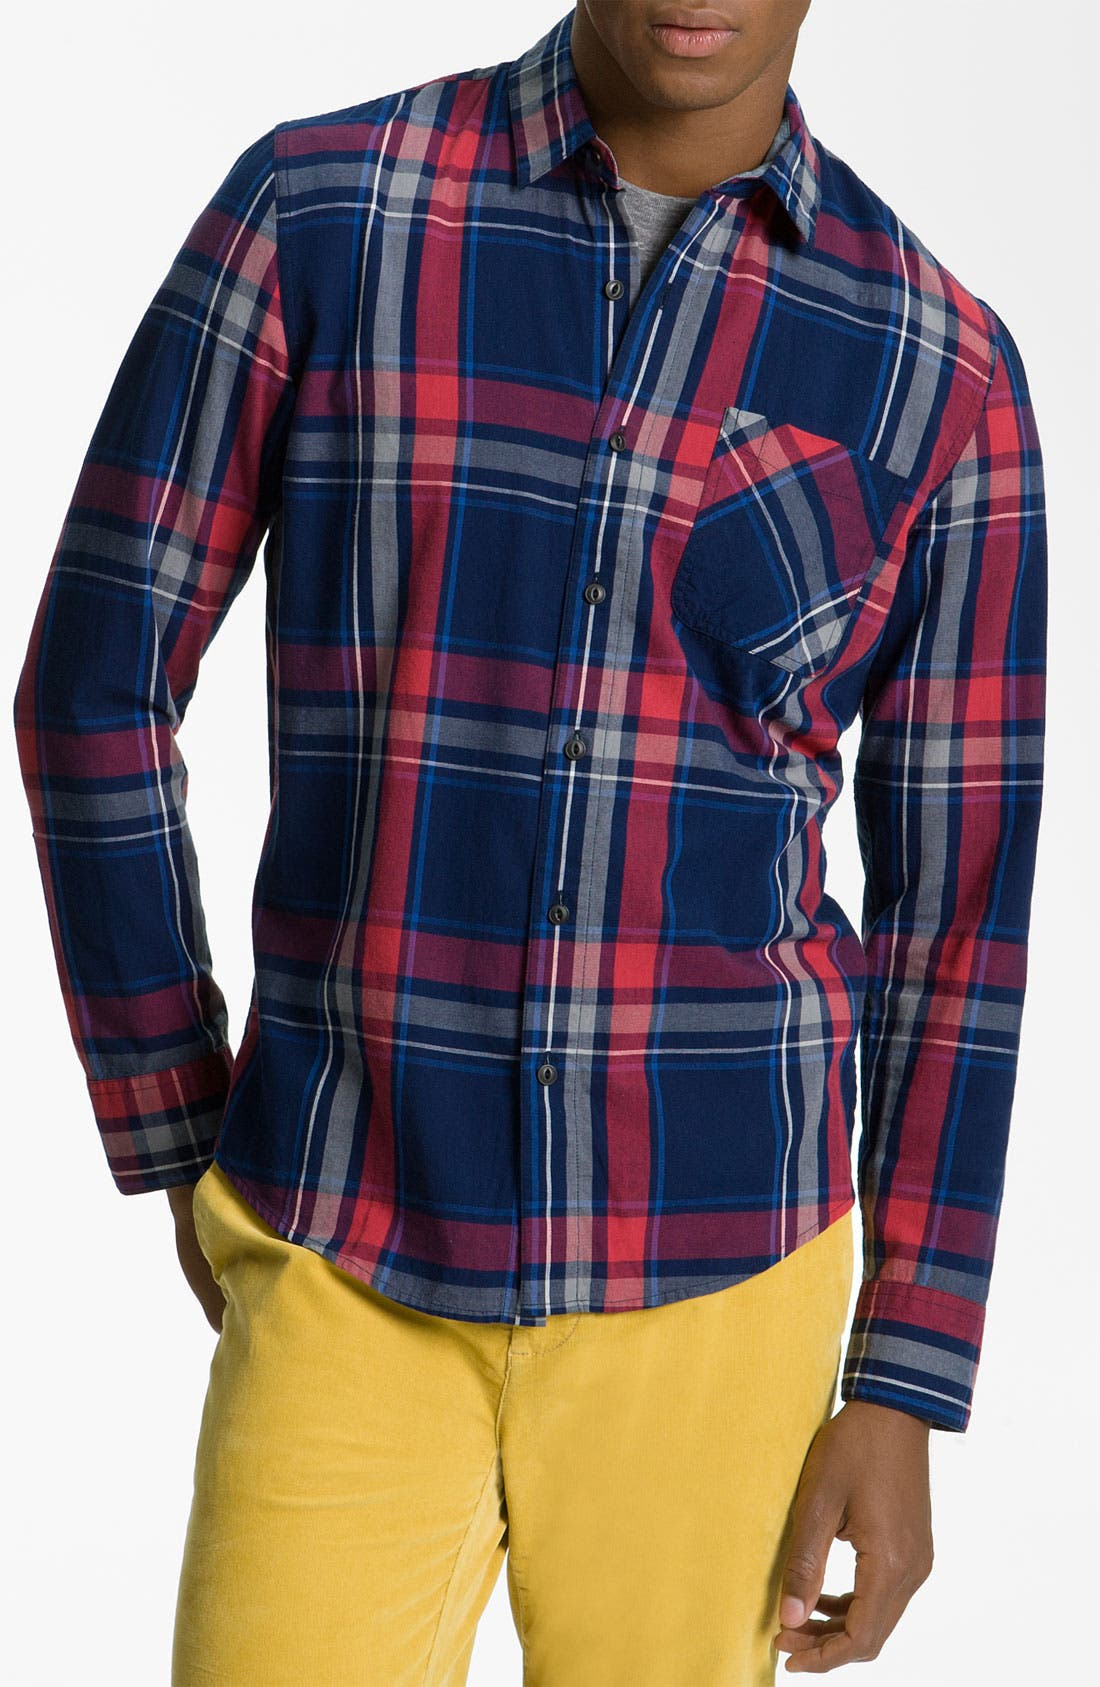 Alternate Image 1 Selected - 1901 Yarn Dyed Plaid Woven Shirt